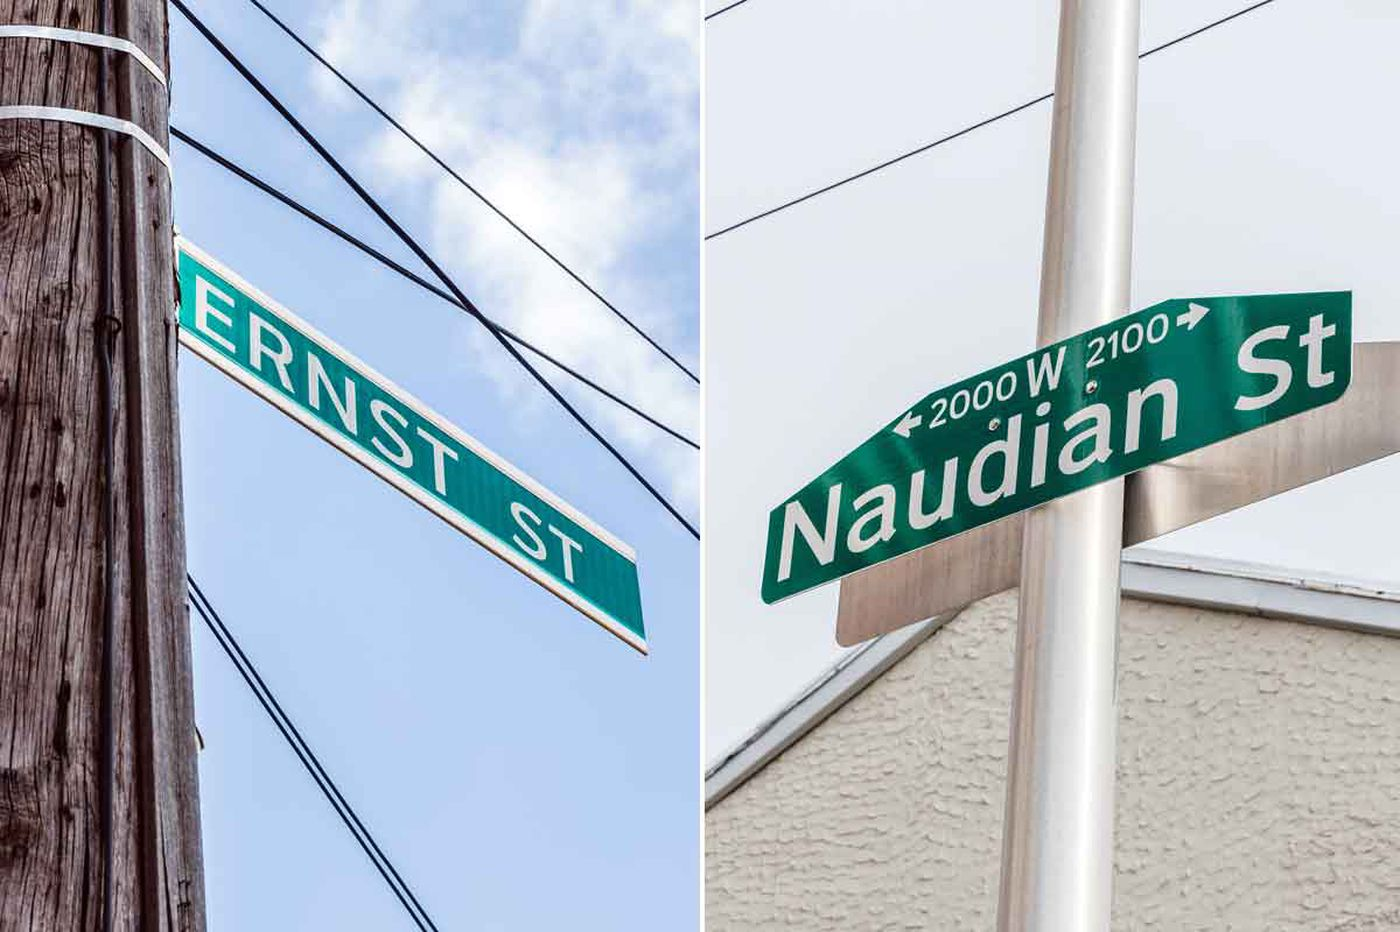 Misspelled street signs in Philly and how they can happen